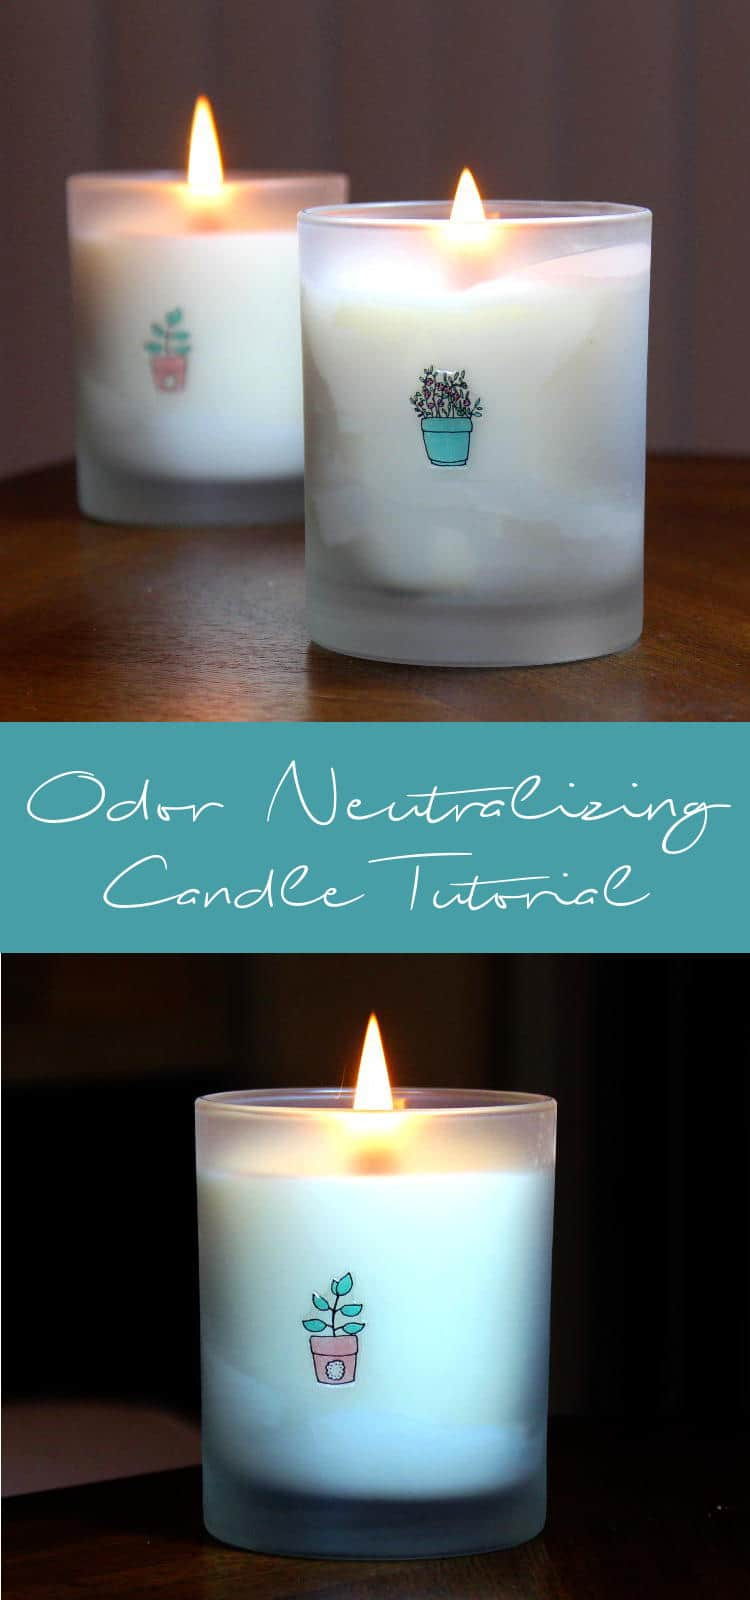 Odour neutralizing candle